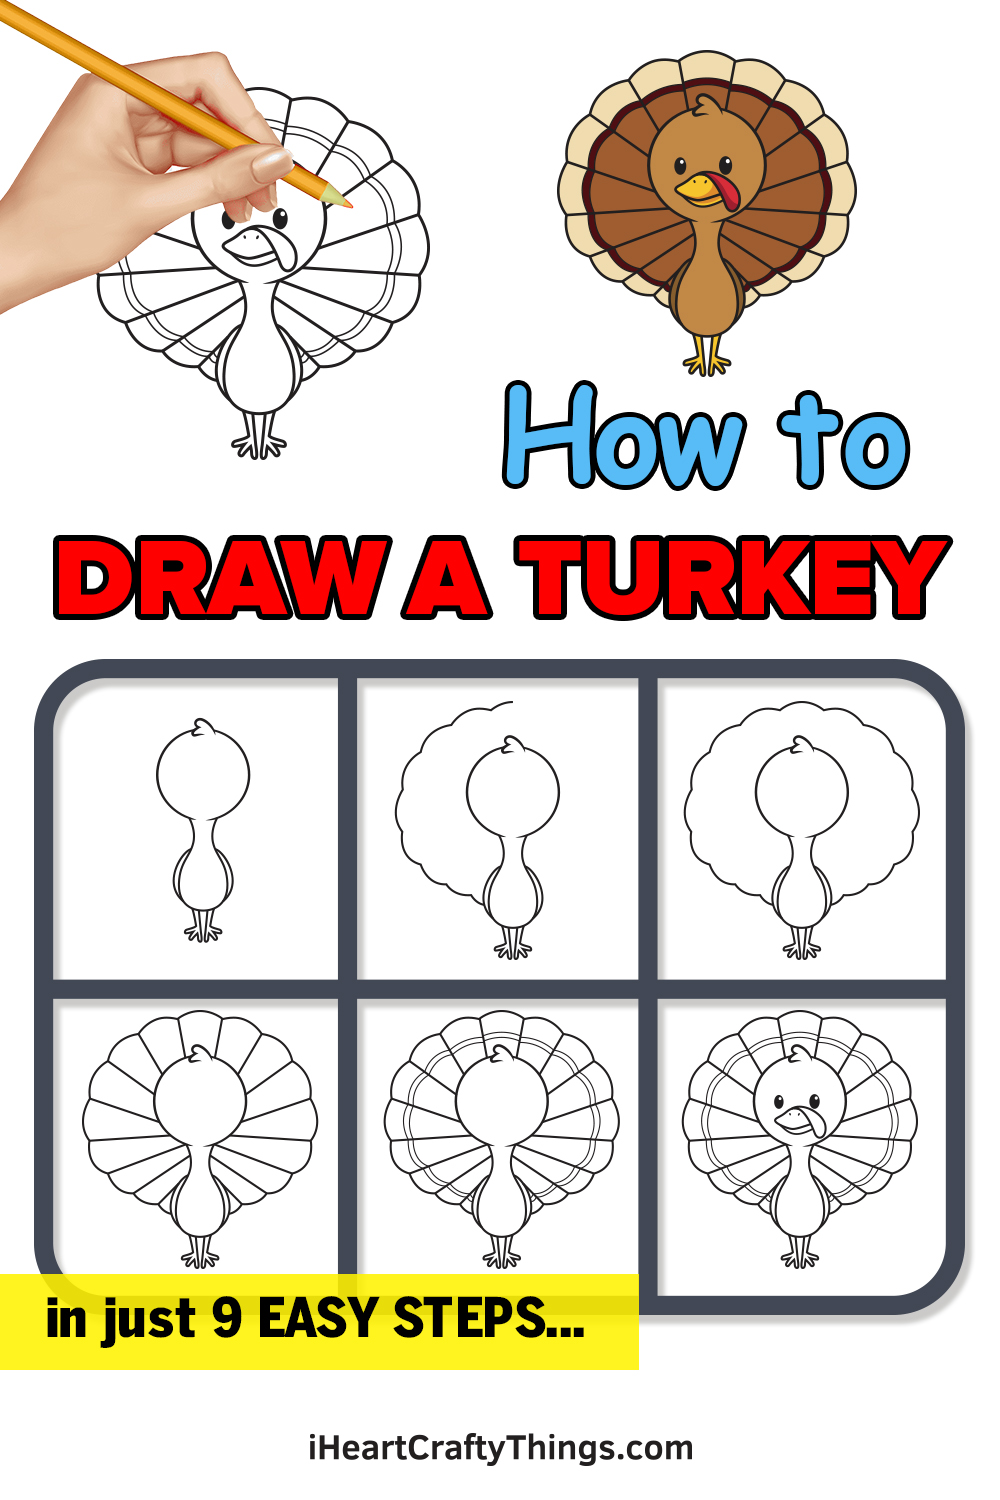 how to draw a turkey in 9 easy steps